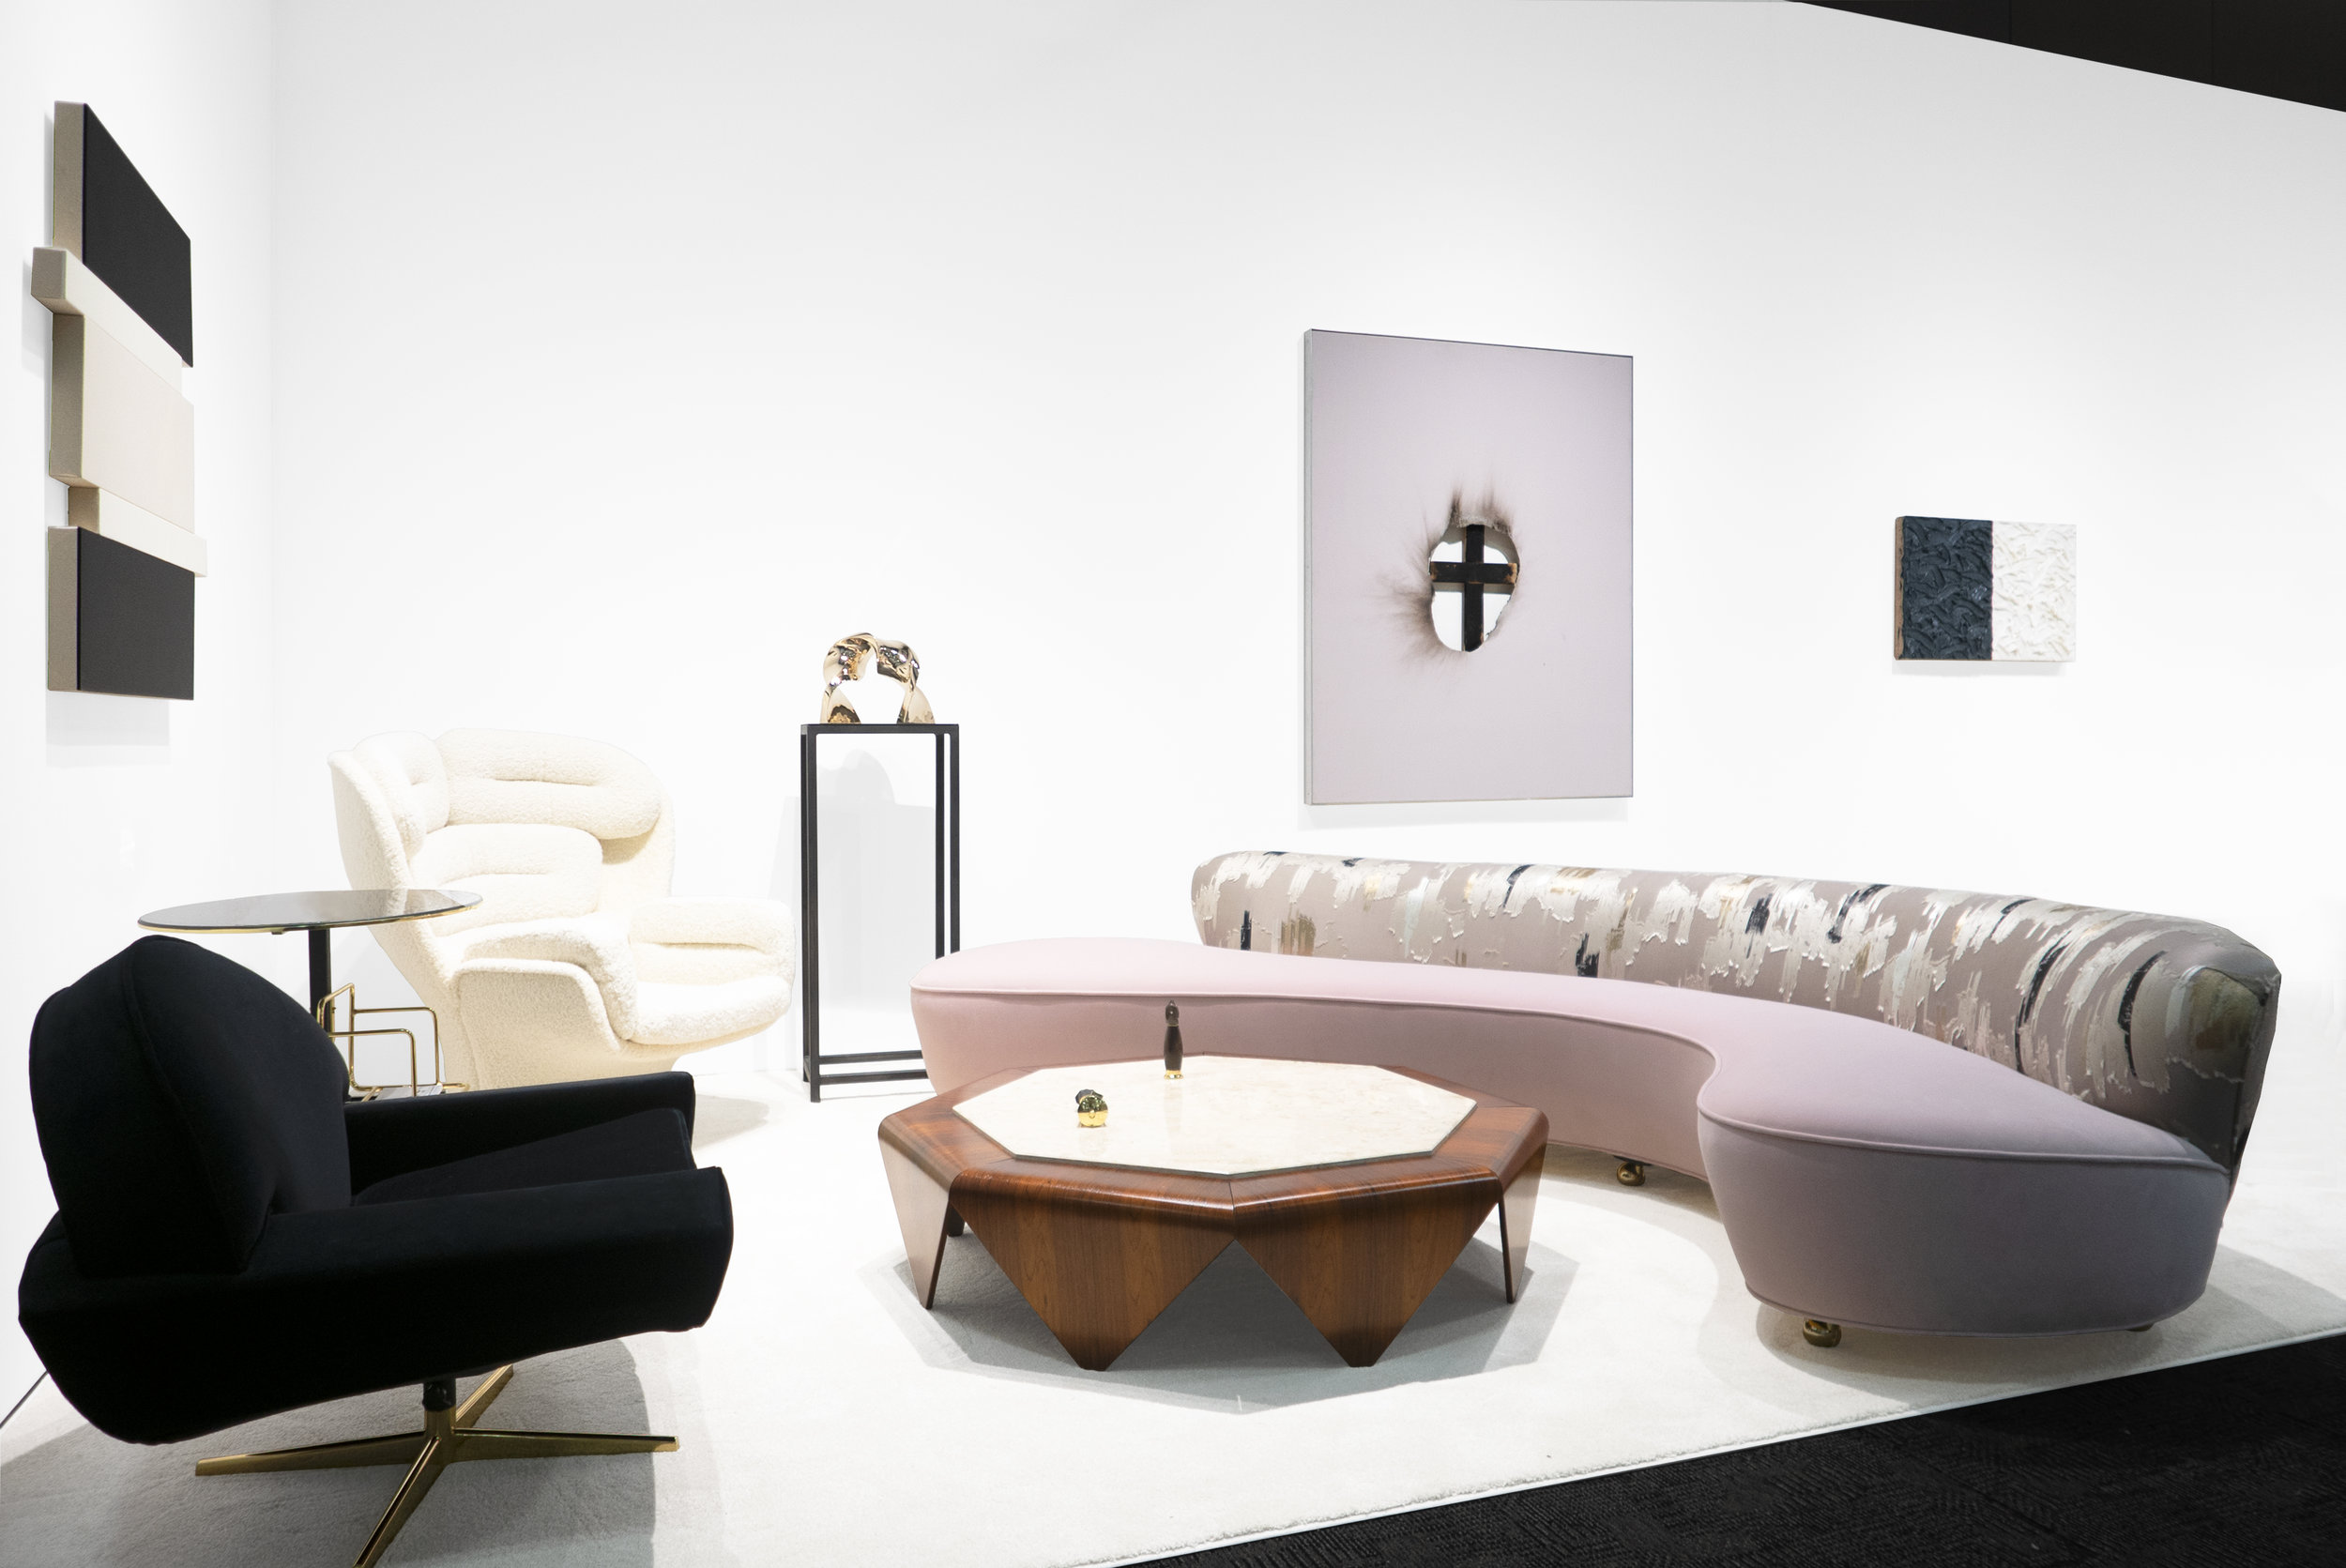 Palm Springs Modernism Show Spring Edition 2019_Peter Blake Gallery_Installation View_4.jpg